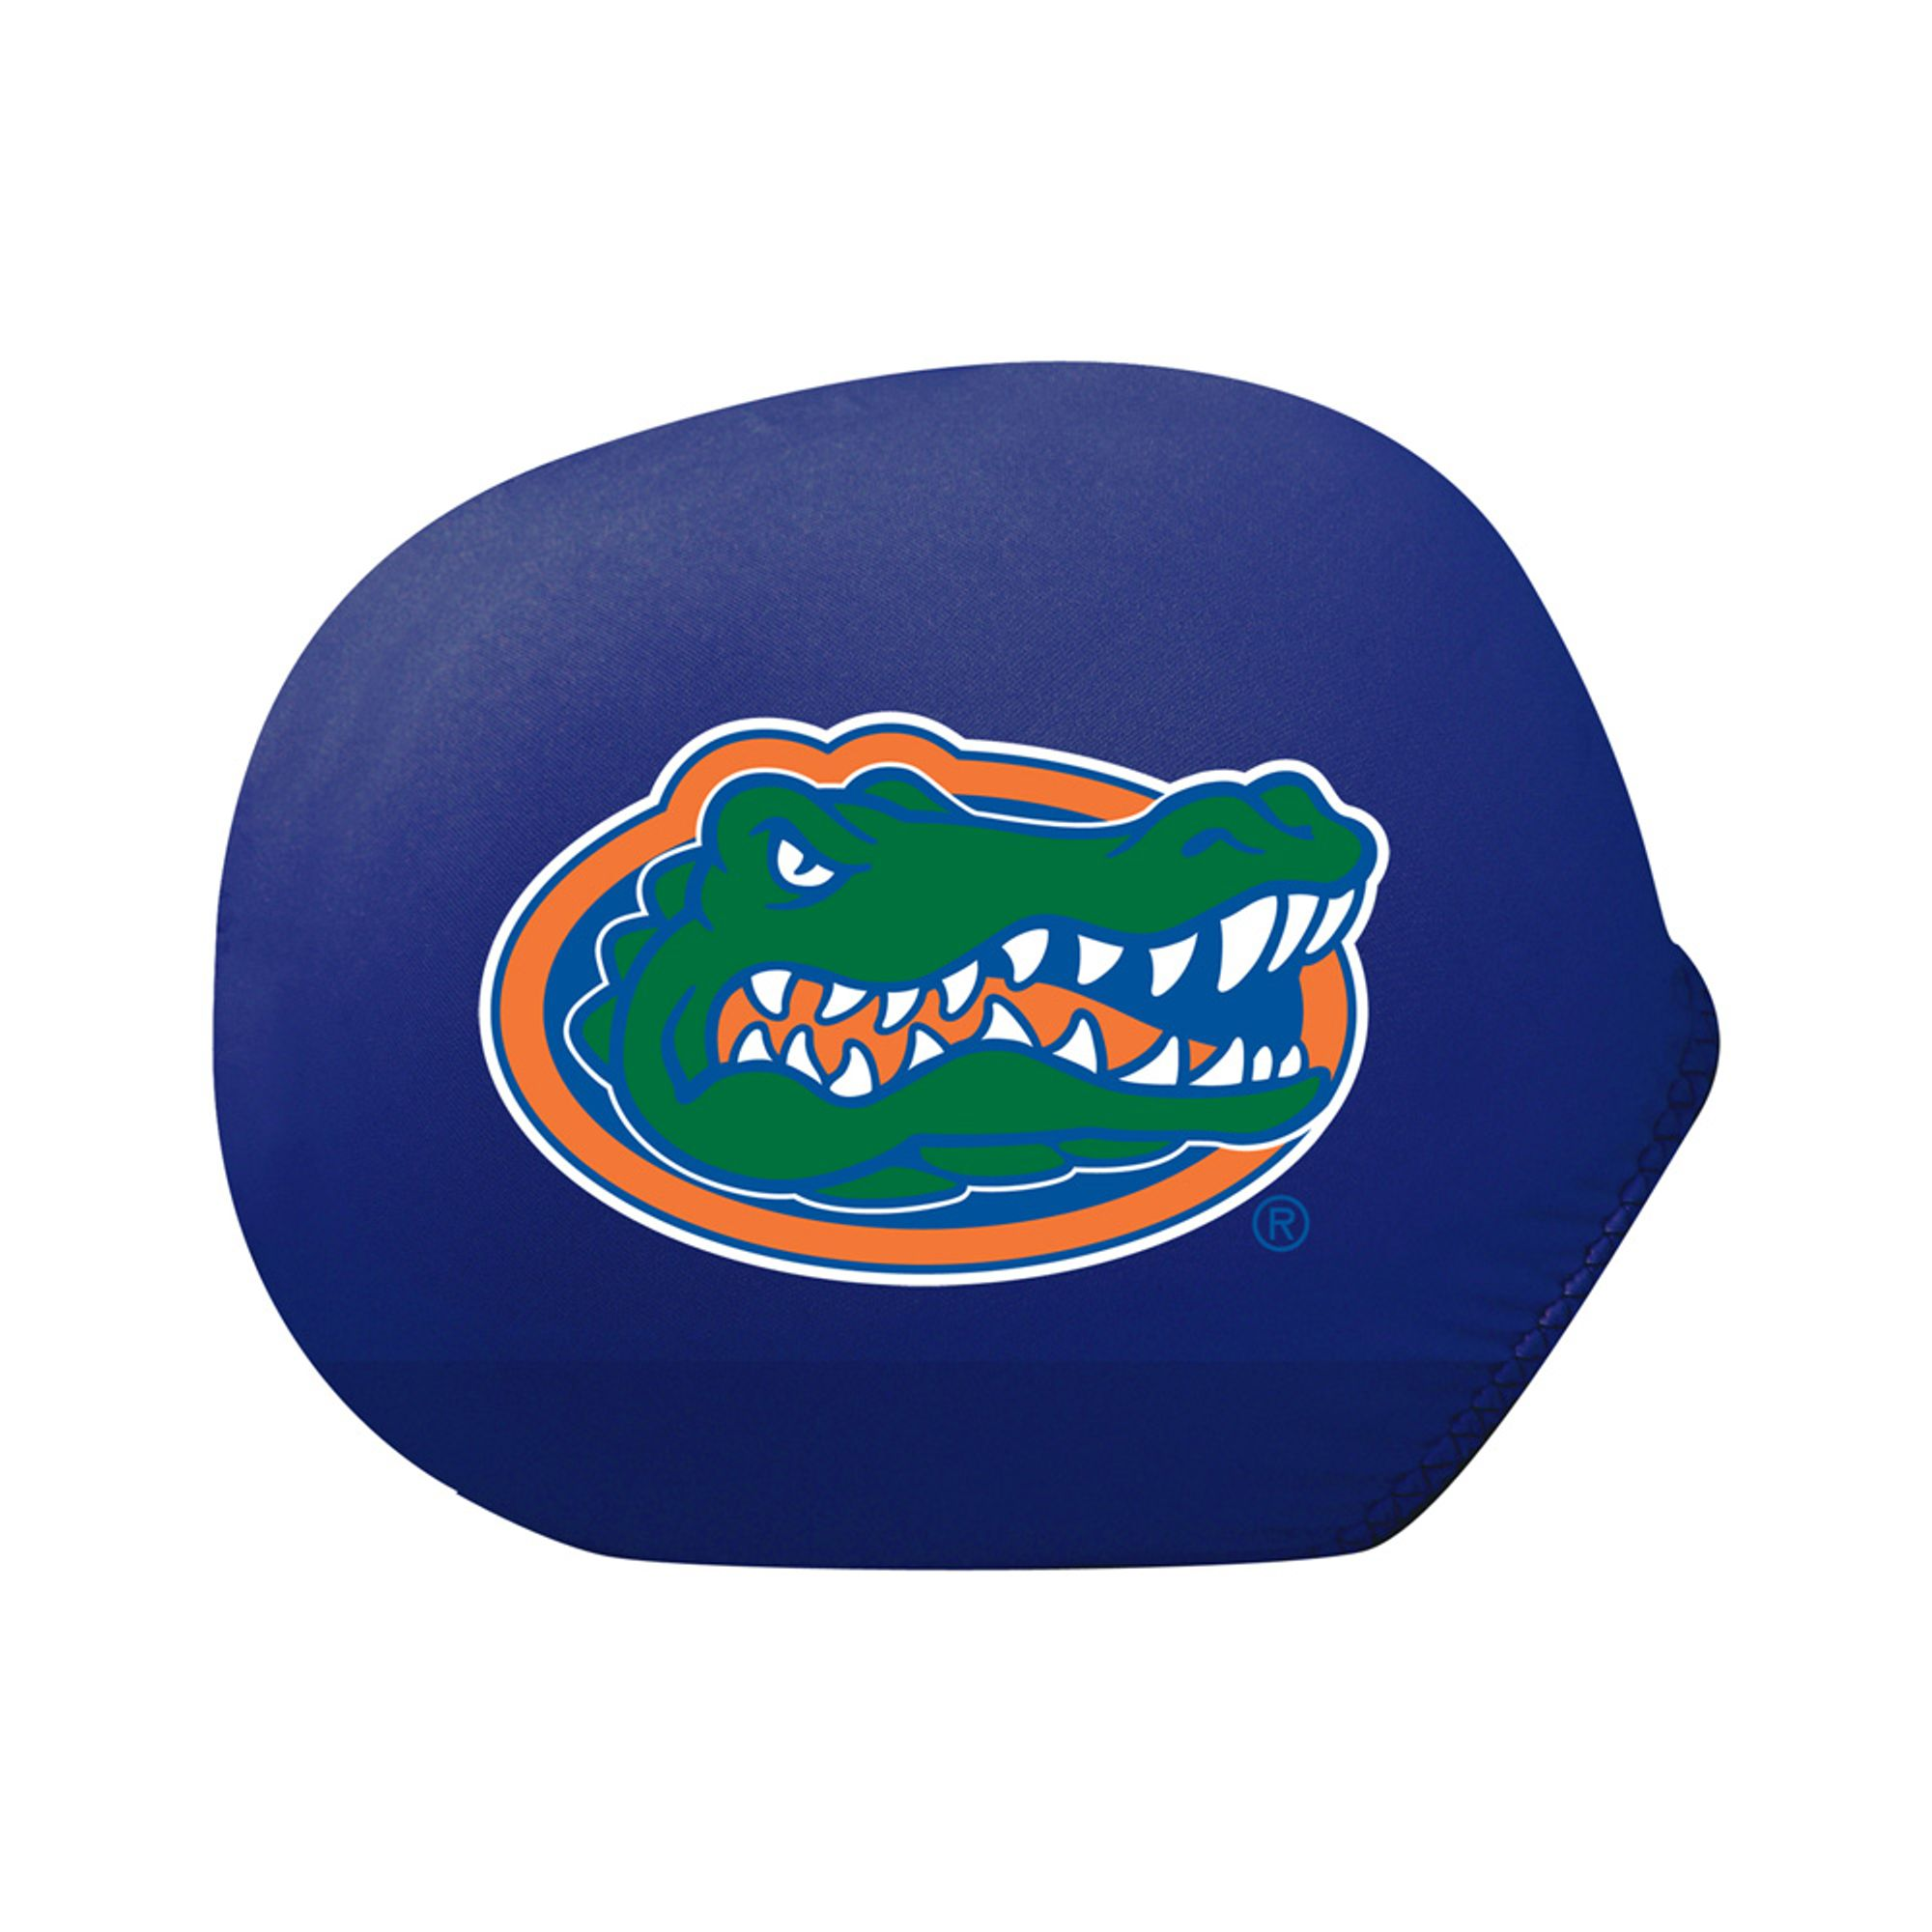 Collegiate Mirror Cover Florida (Large) (Ultra durable 4-way stretch material, Weather resistant)